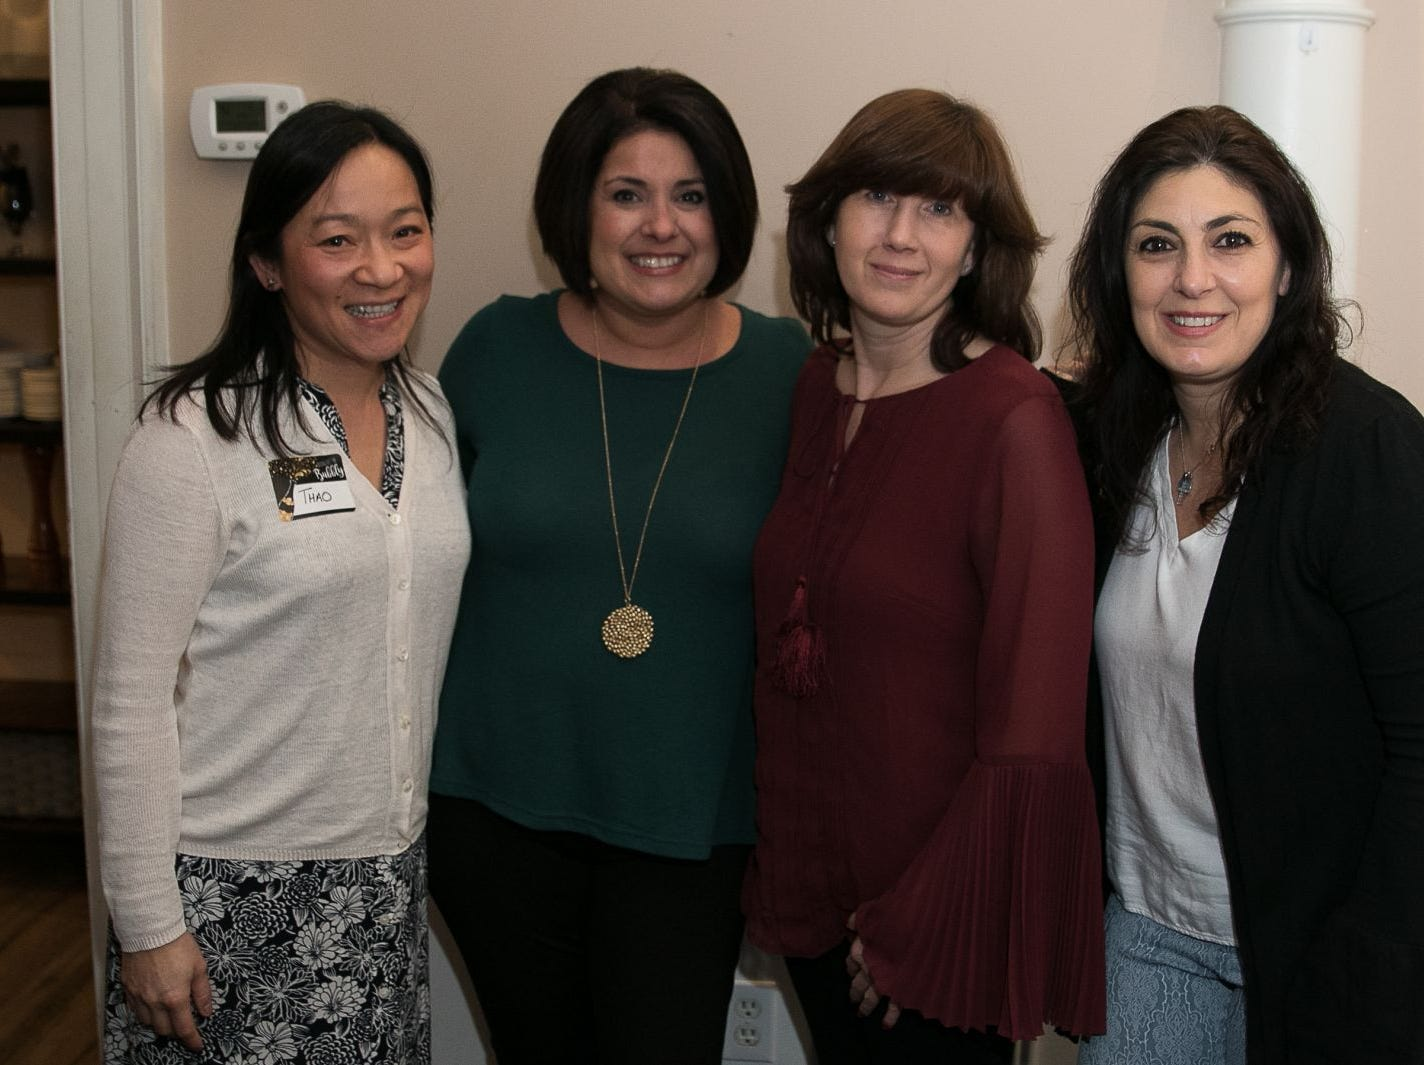 Thao Groenwald. Gina Salerno, Kelli Moss, Josephine Papalia. The Saddle River Valley Junior Woman's Club held an inductee dinnerfor incoming members at Bellisimo Restaurante in Montvale. 01/23/2019